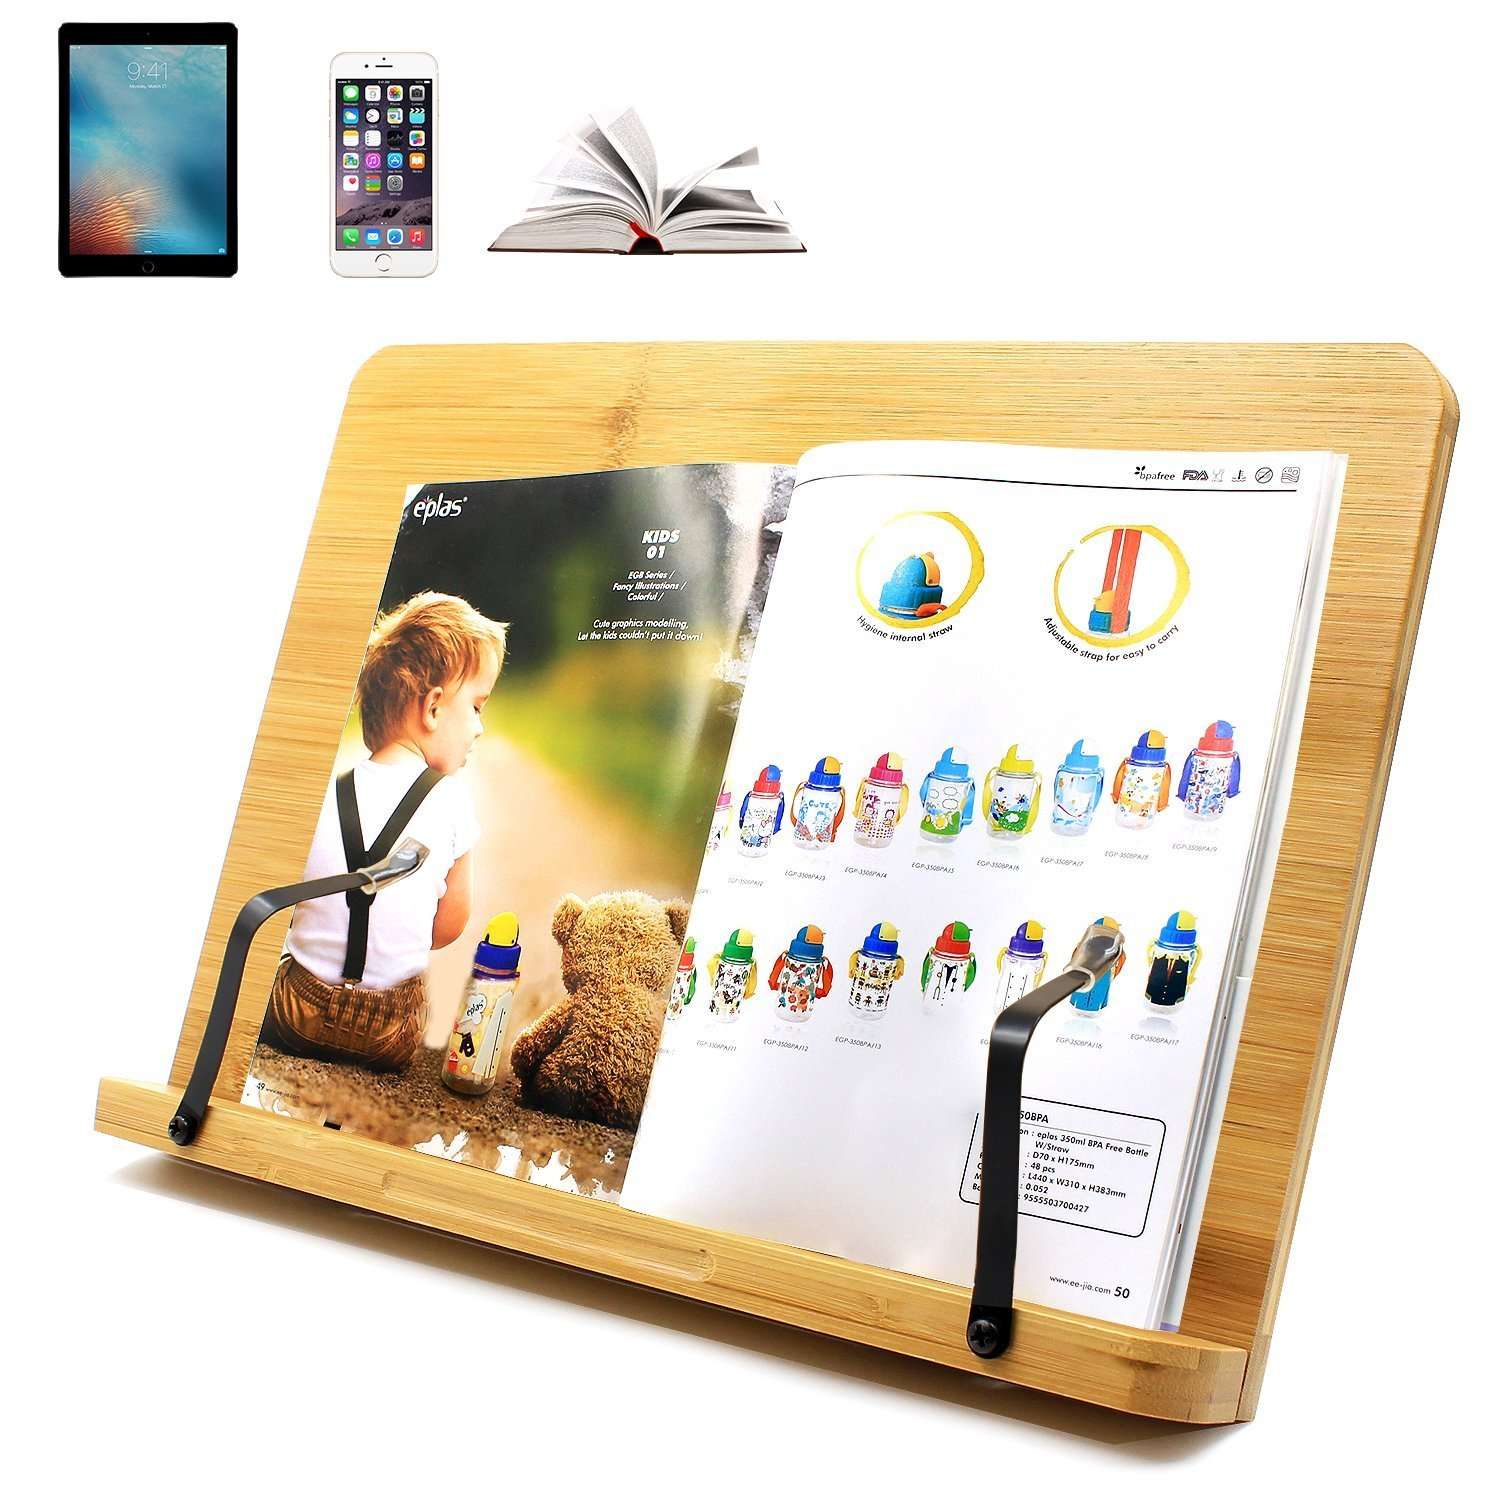 Book Stand holder PC Desk for Reading Rest Cookbook Foldable Tablet iPad Textbooks stands/BamBoo book holder/Cook Recipe/Musicbook/Multipurpose Portable Bookrest Adjustable angle